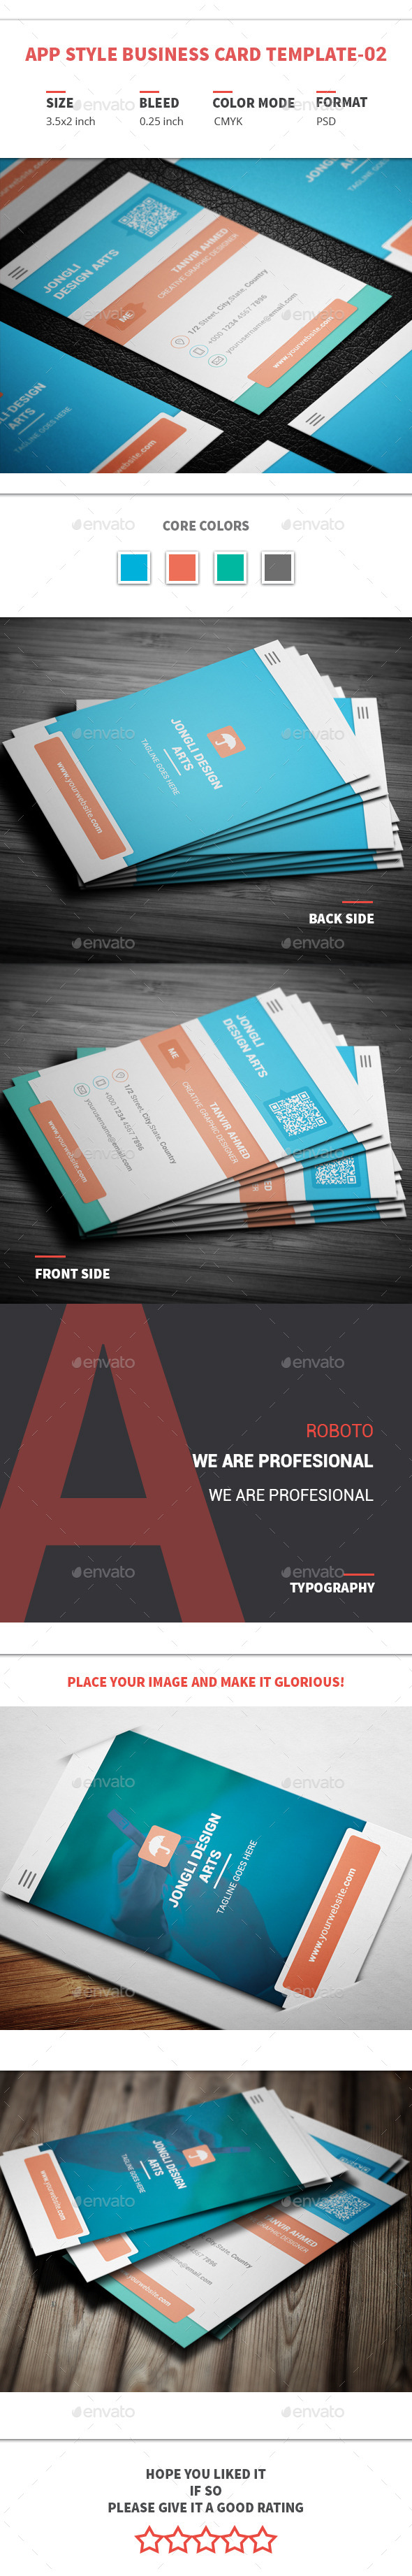 App style business card template 02 pinterest identidade marca app style business card template printdesign visitenkarte download httpgraphicriver reheart Choice Image